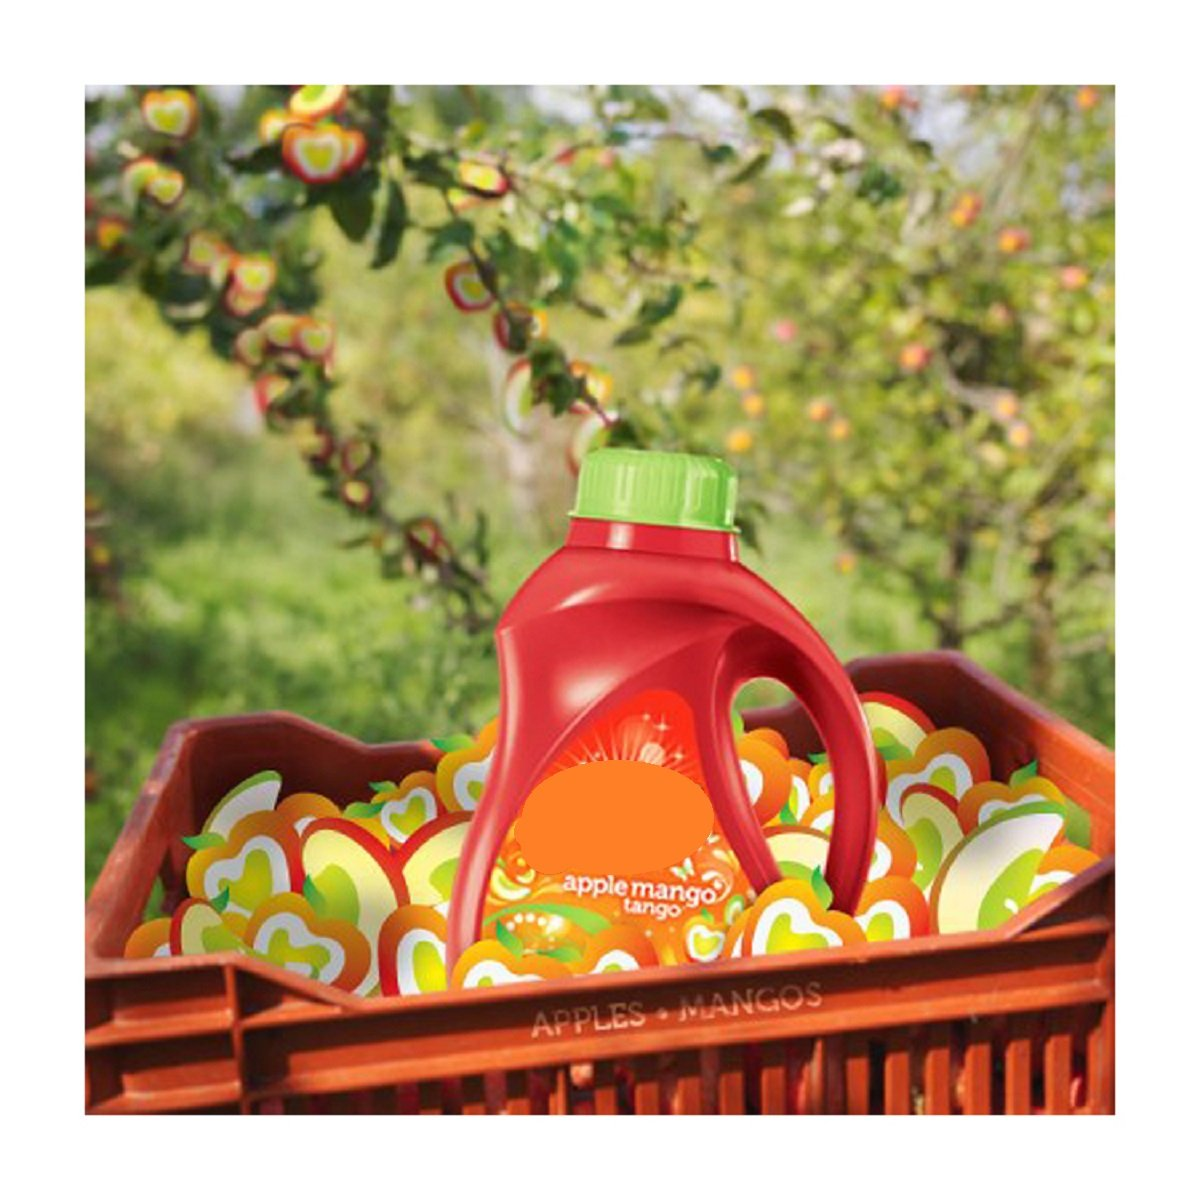 GAIN Apple Mango Tango Type Fragrance Oil - 16 oz/1 LB - for Candle & SOAP Making by Virginia Candle Supply - Free S&H in USA